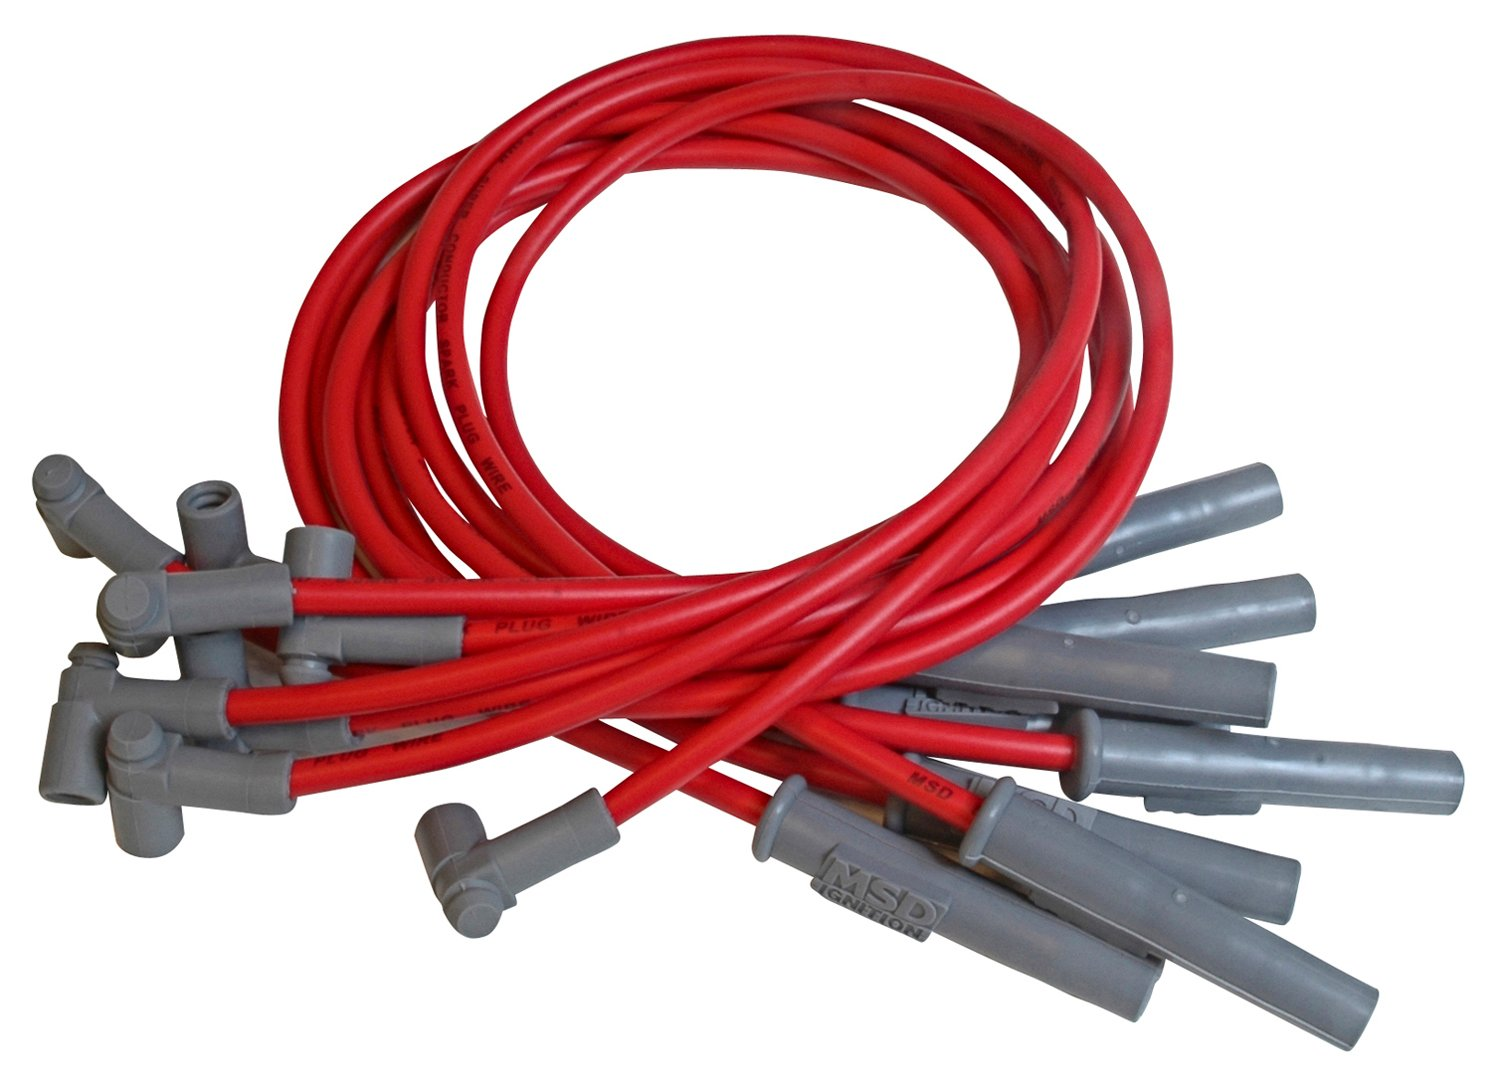 Msd 32749 Super Conductor Spark Plug Wire Set 318 360 Hei For Dodge Wiring Tach